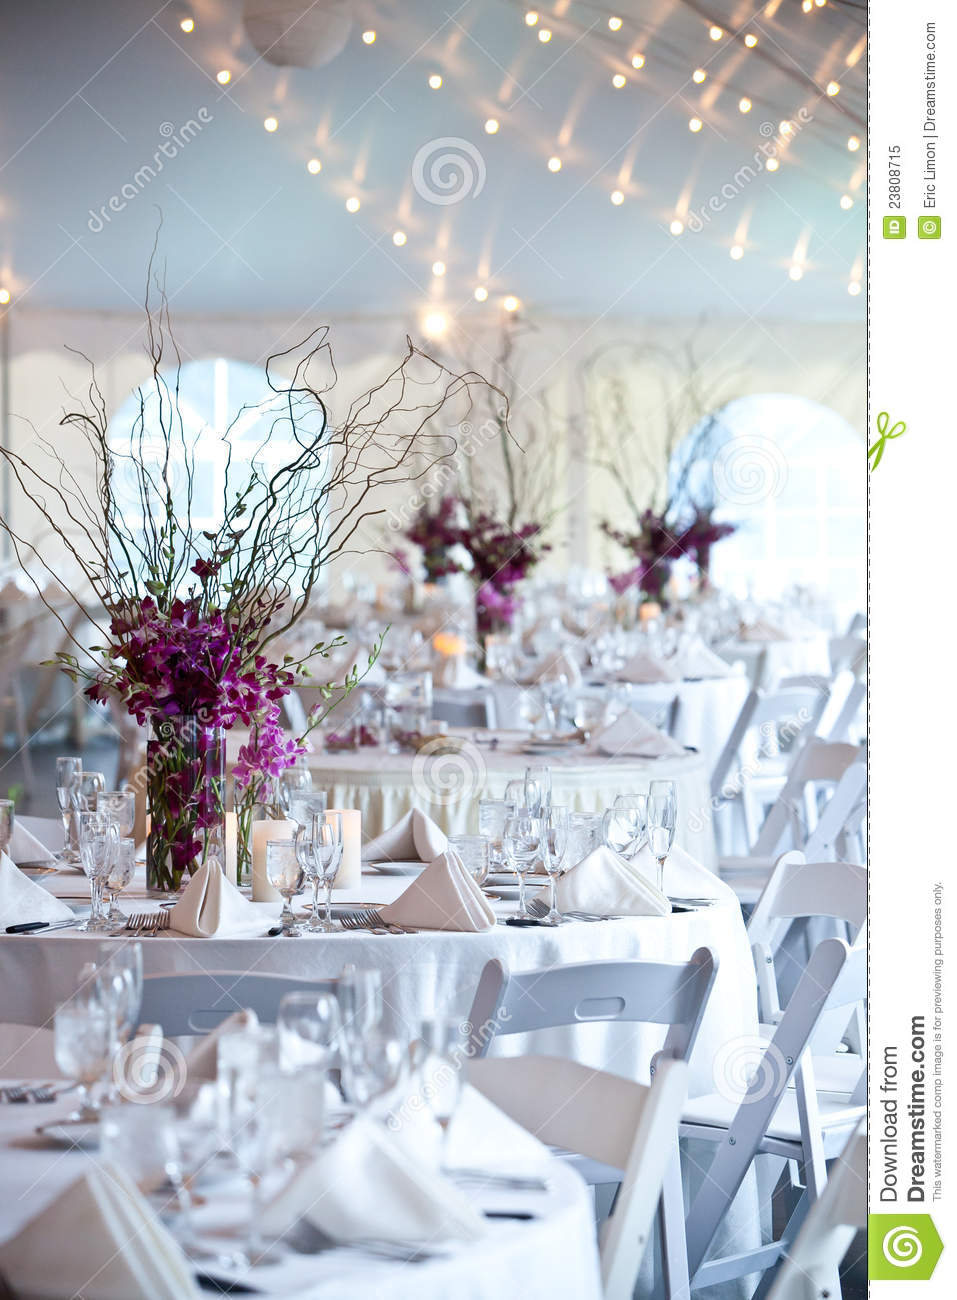 Wedding Tables Under A Tent Stock Image Image 23808715